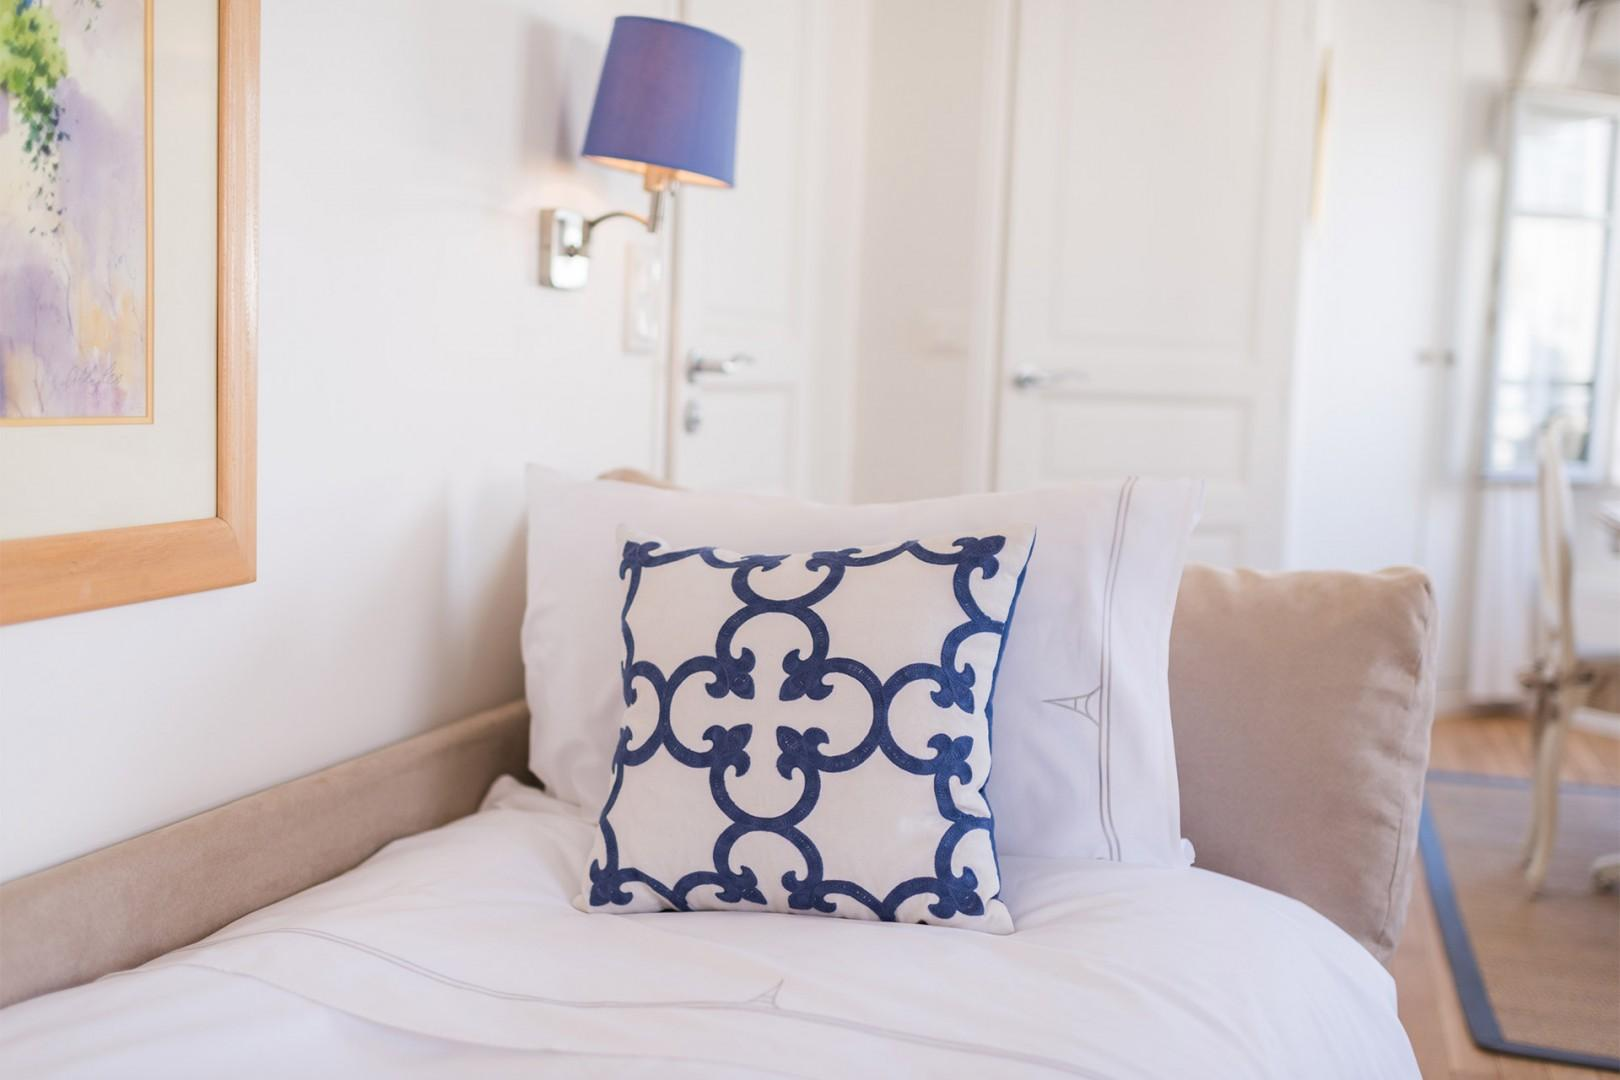 Sink into the luxurious linens for a good night's sleep.